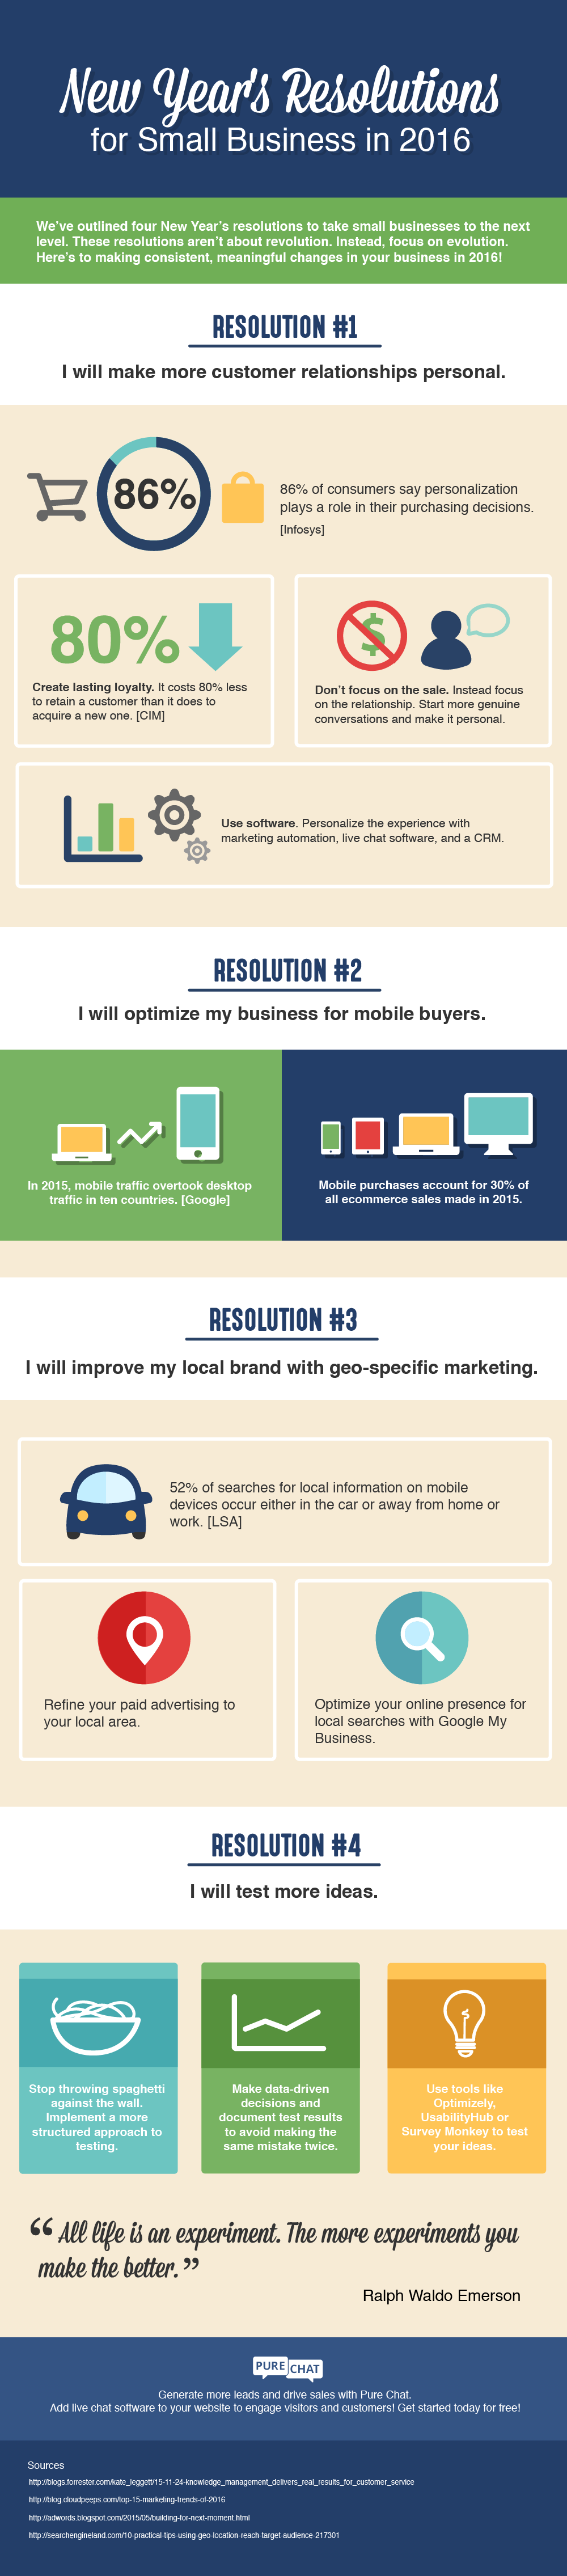 New Year\'s Resolutions for Small Business INFOGRAPHIC